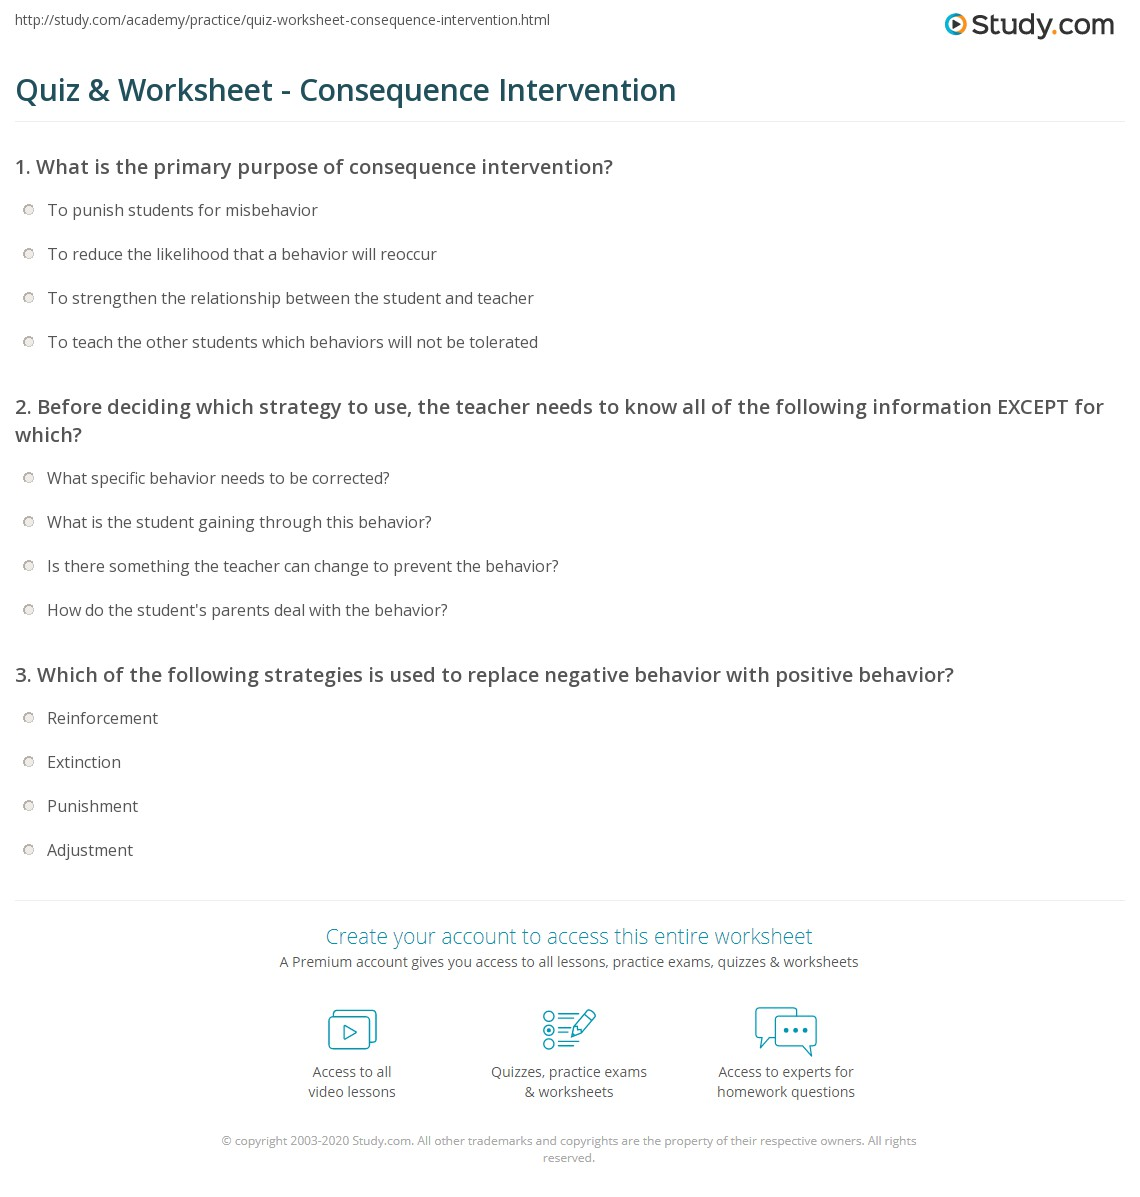 quiz & worksheet - consequence intervention | study